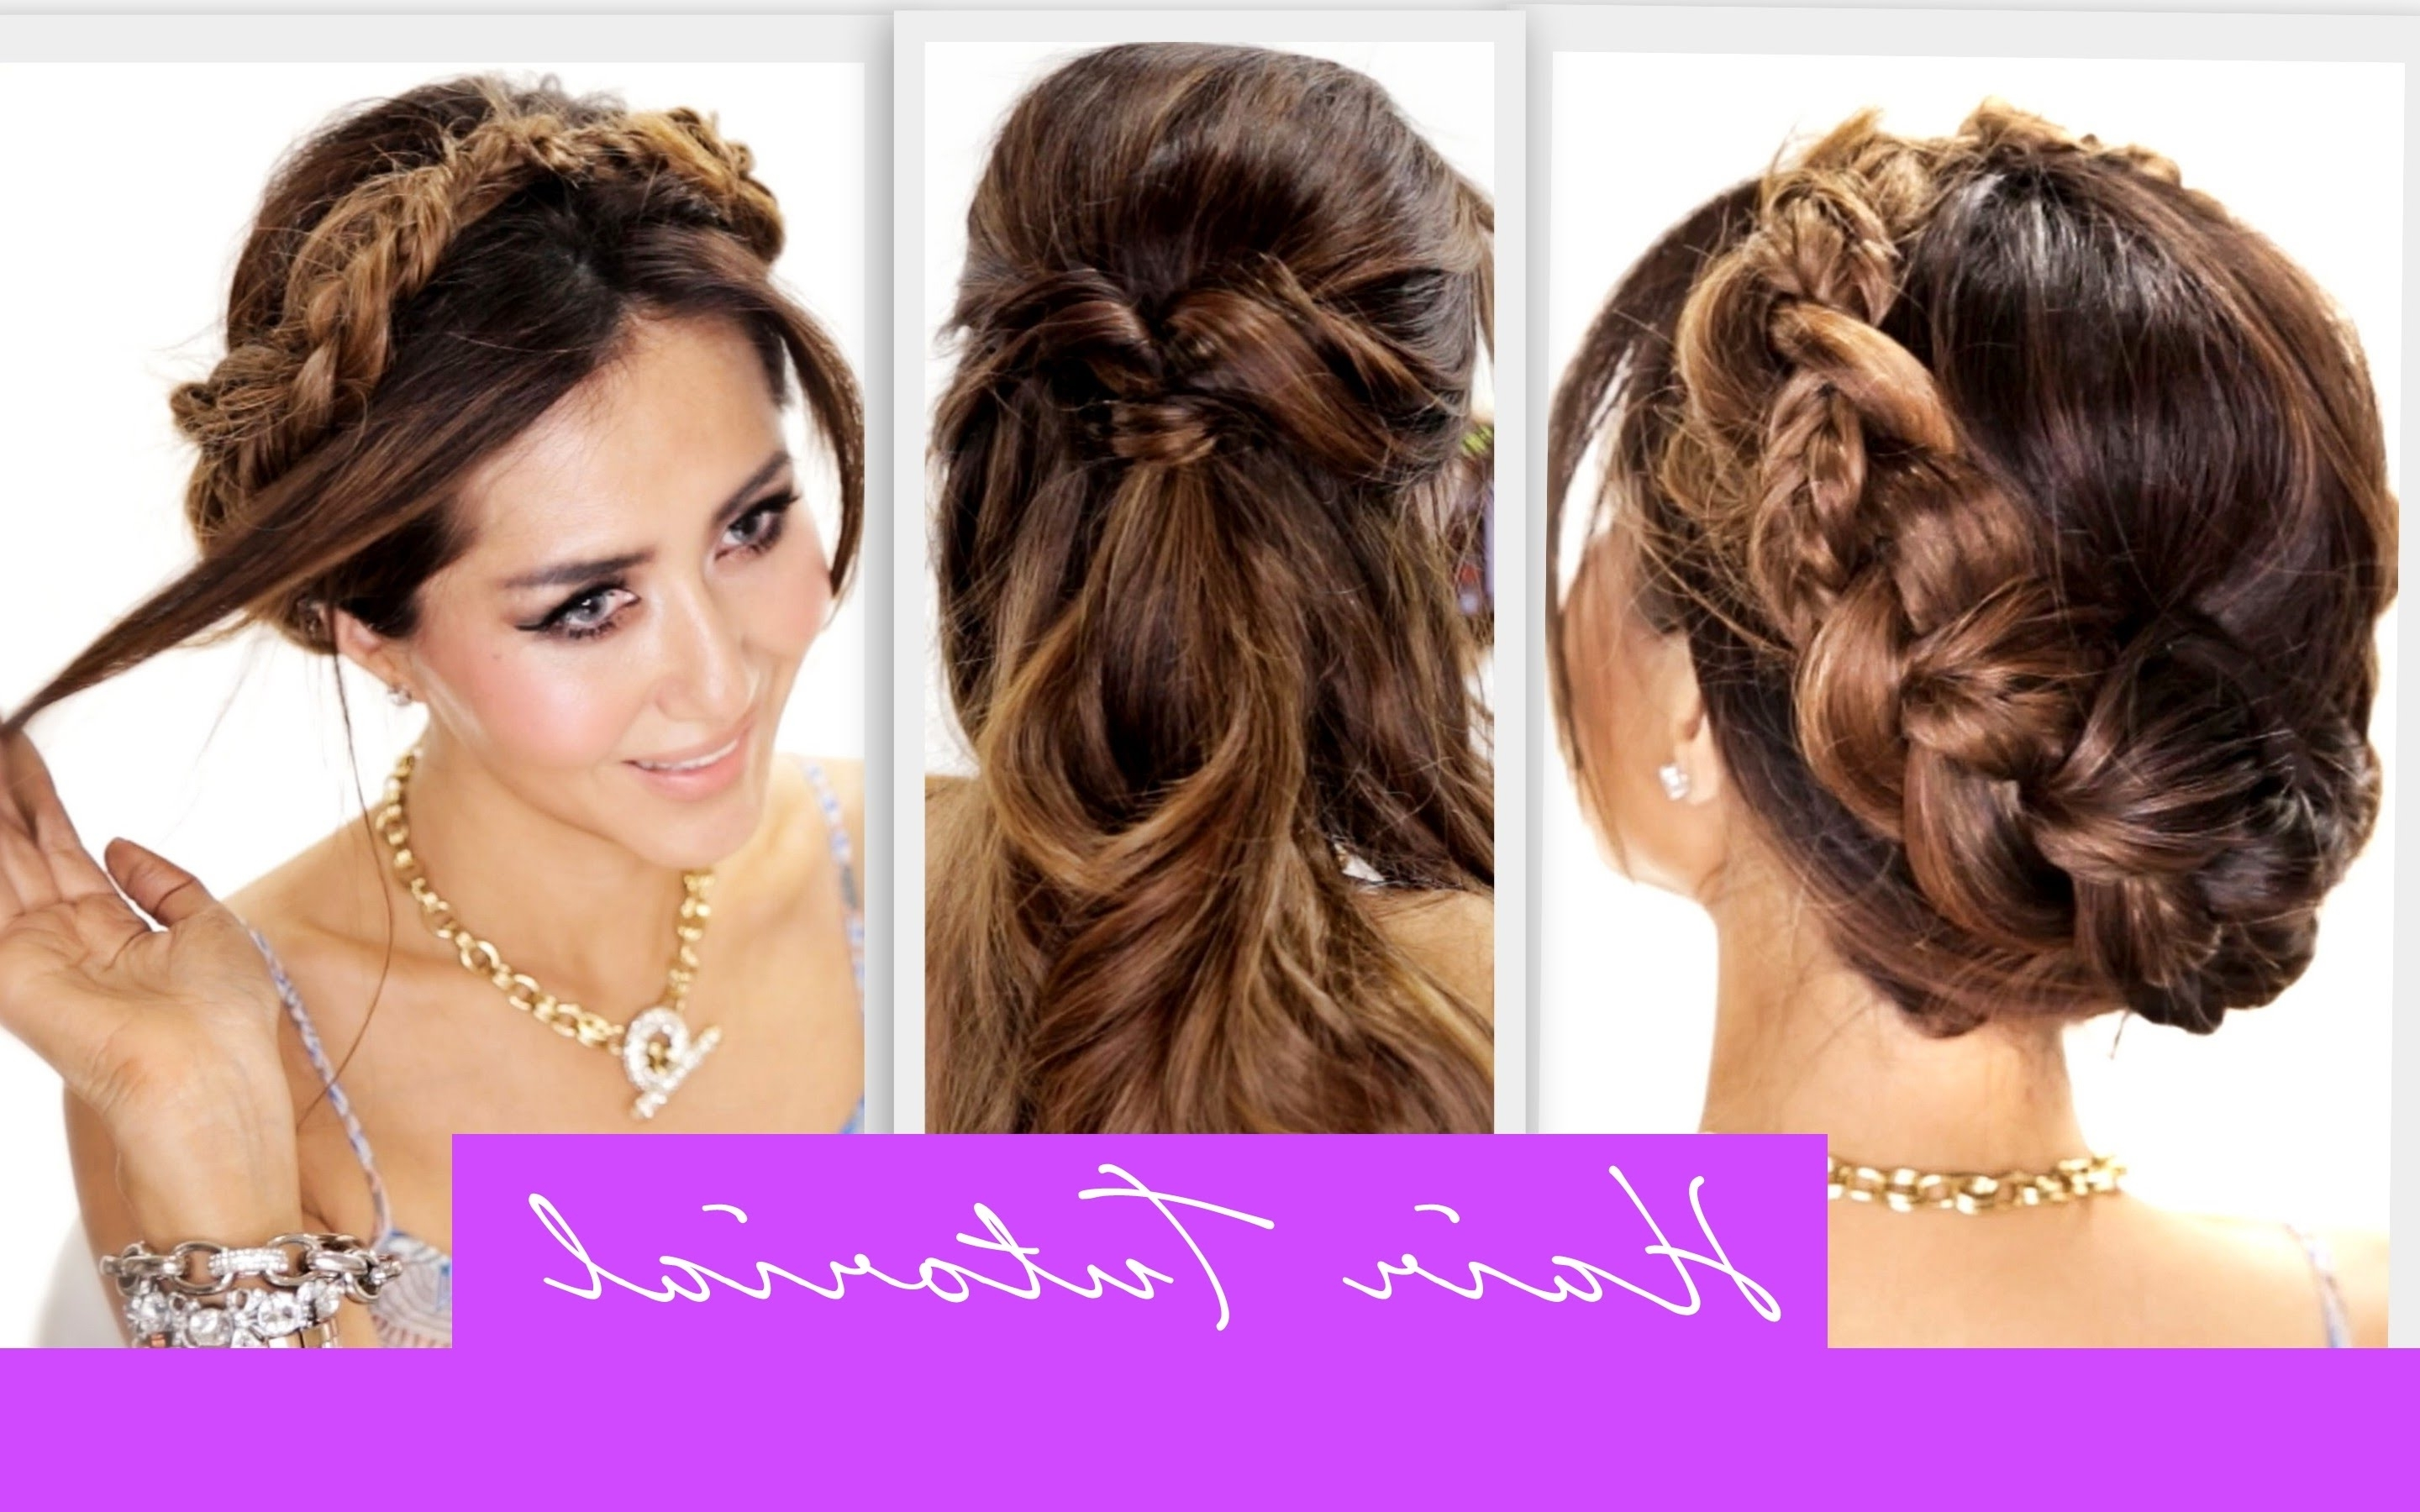 Cute Braided Hairstyles For And Easy Braid Tutorials That Are With Regard To Easy Braided Updos For Medium Hair (View 12 of 15)